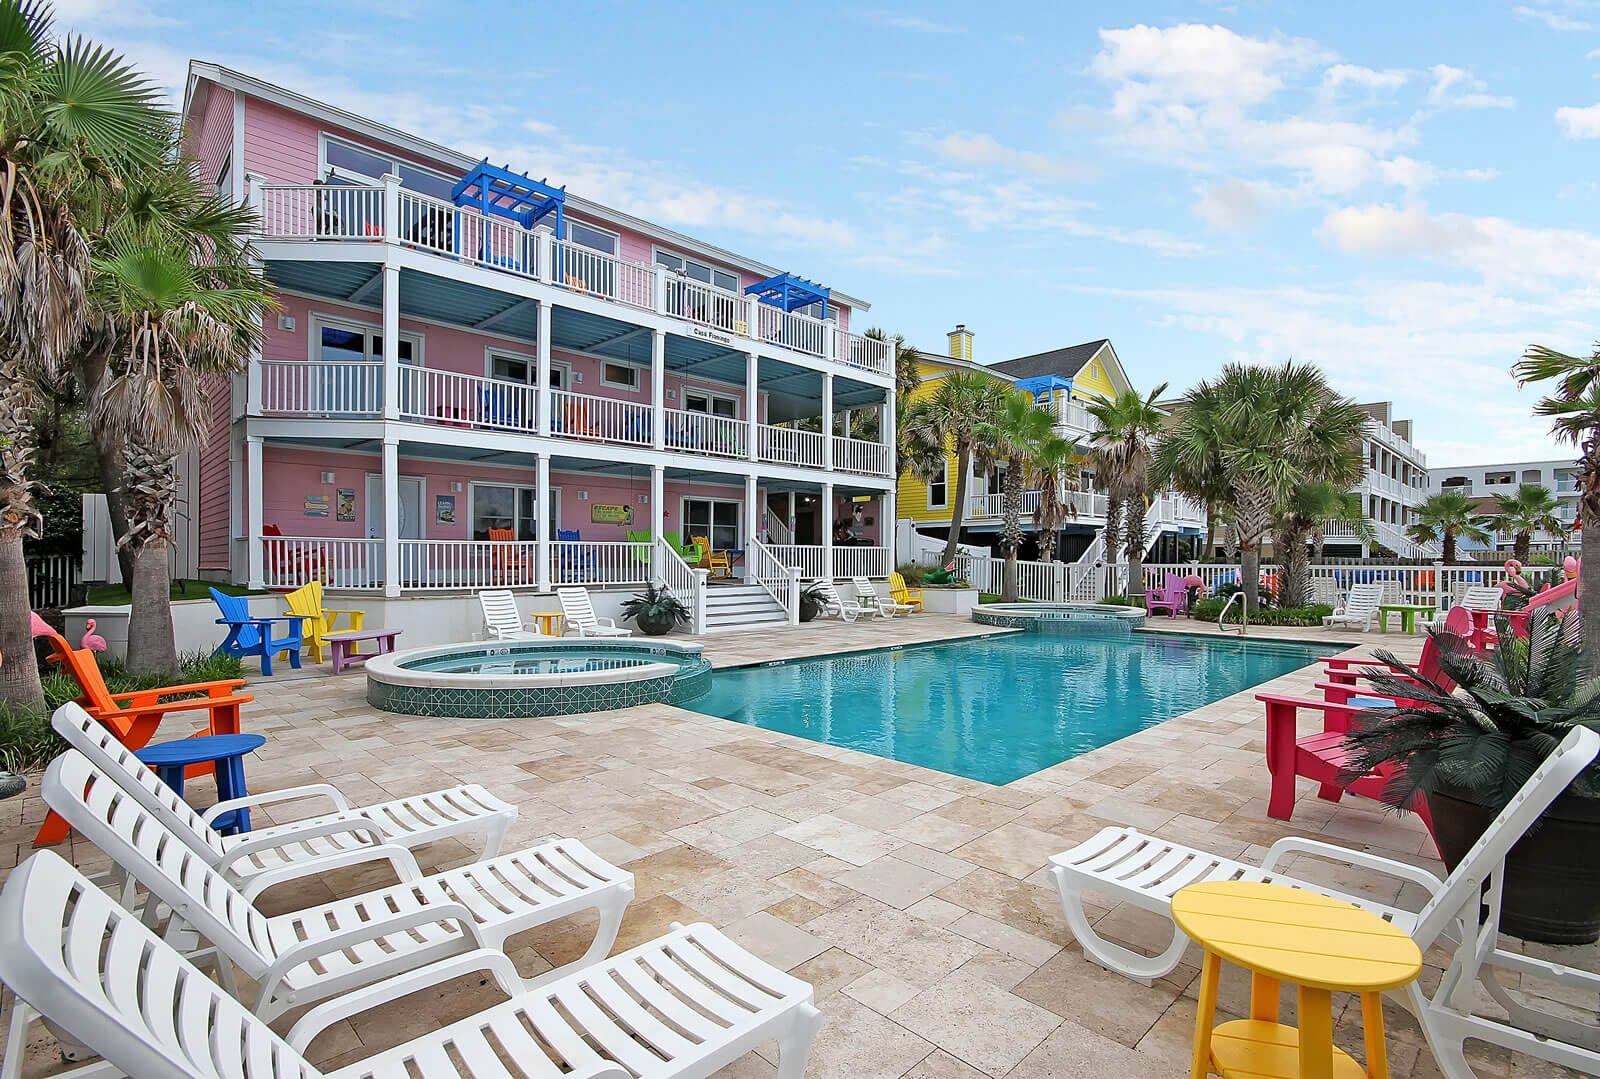 Casa Flamingo Private Pool and Kiddie Pools - Isle of Palms, SC